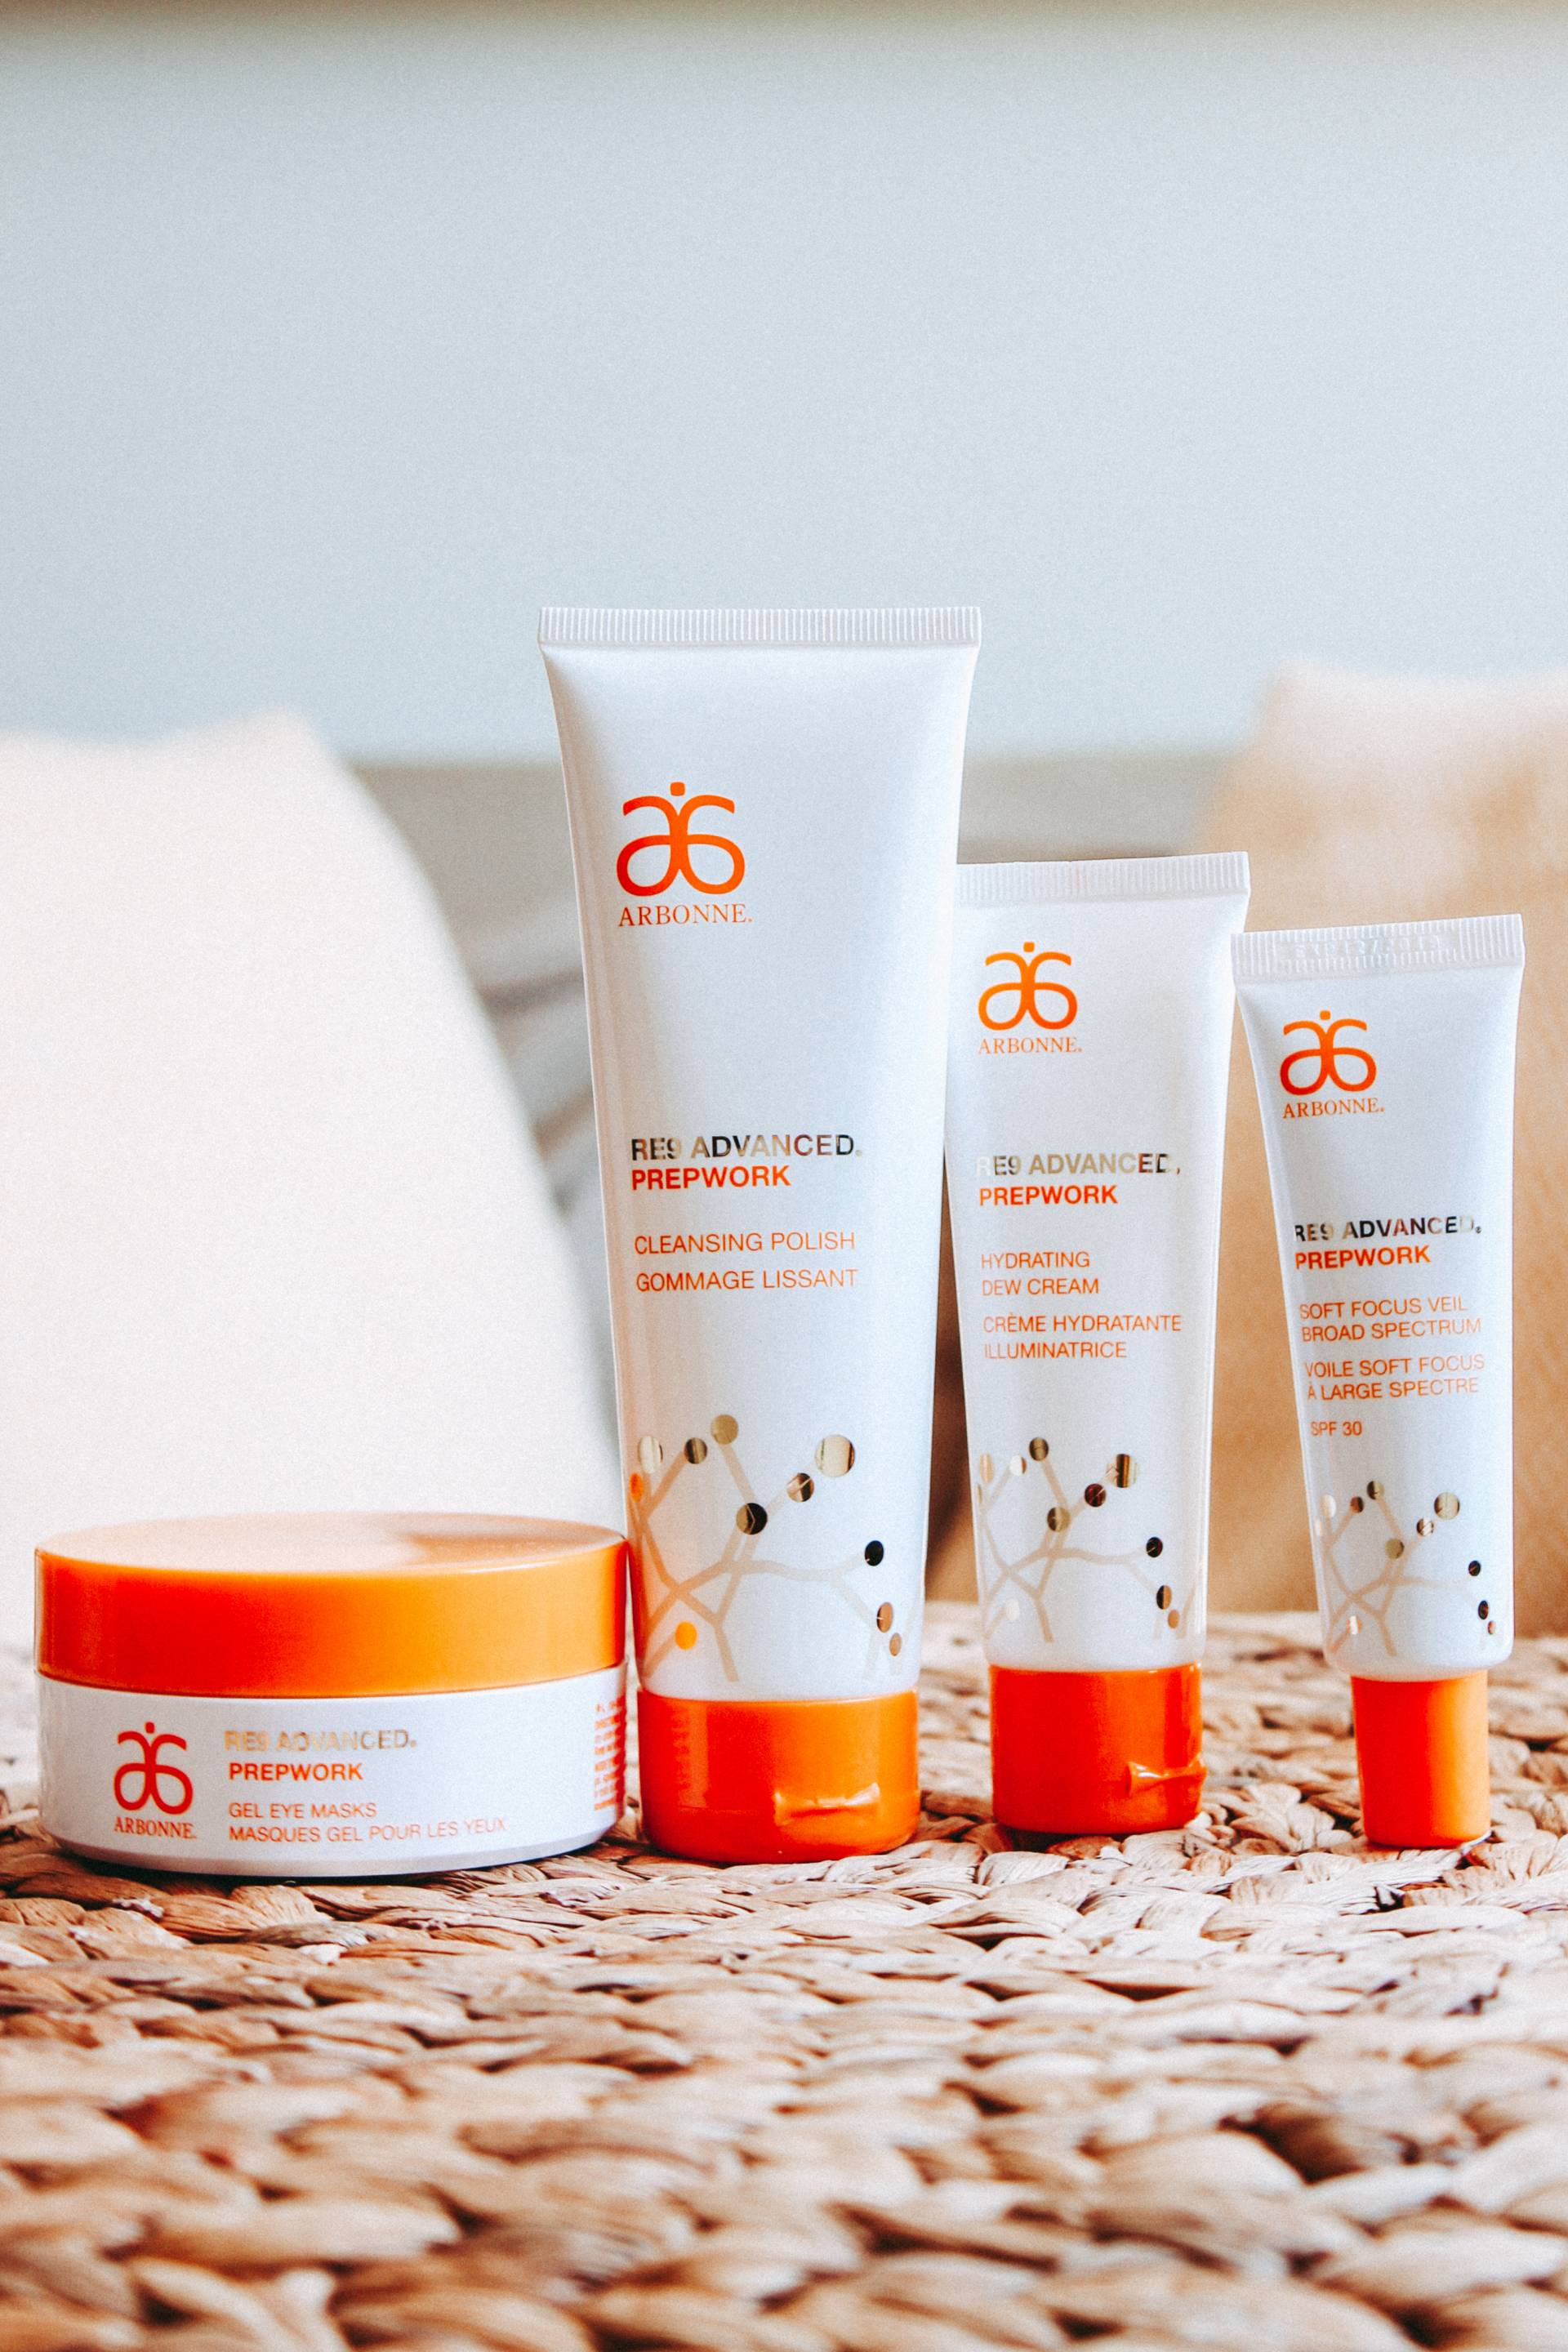 Arbonne RE9 Advanced Prepwork skincare range